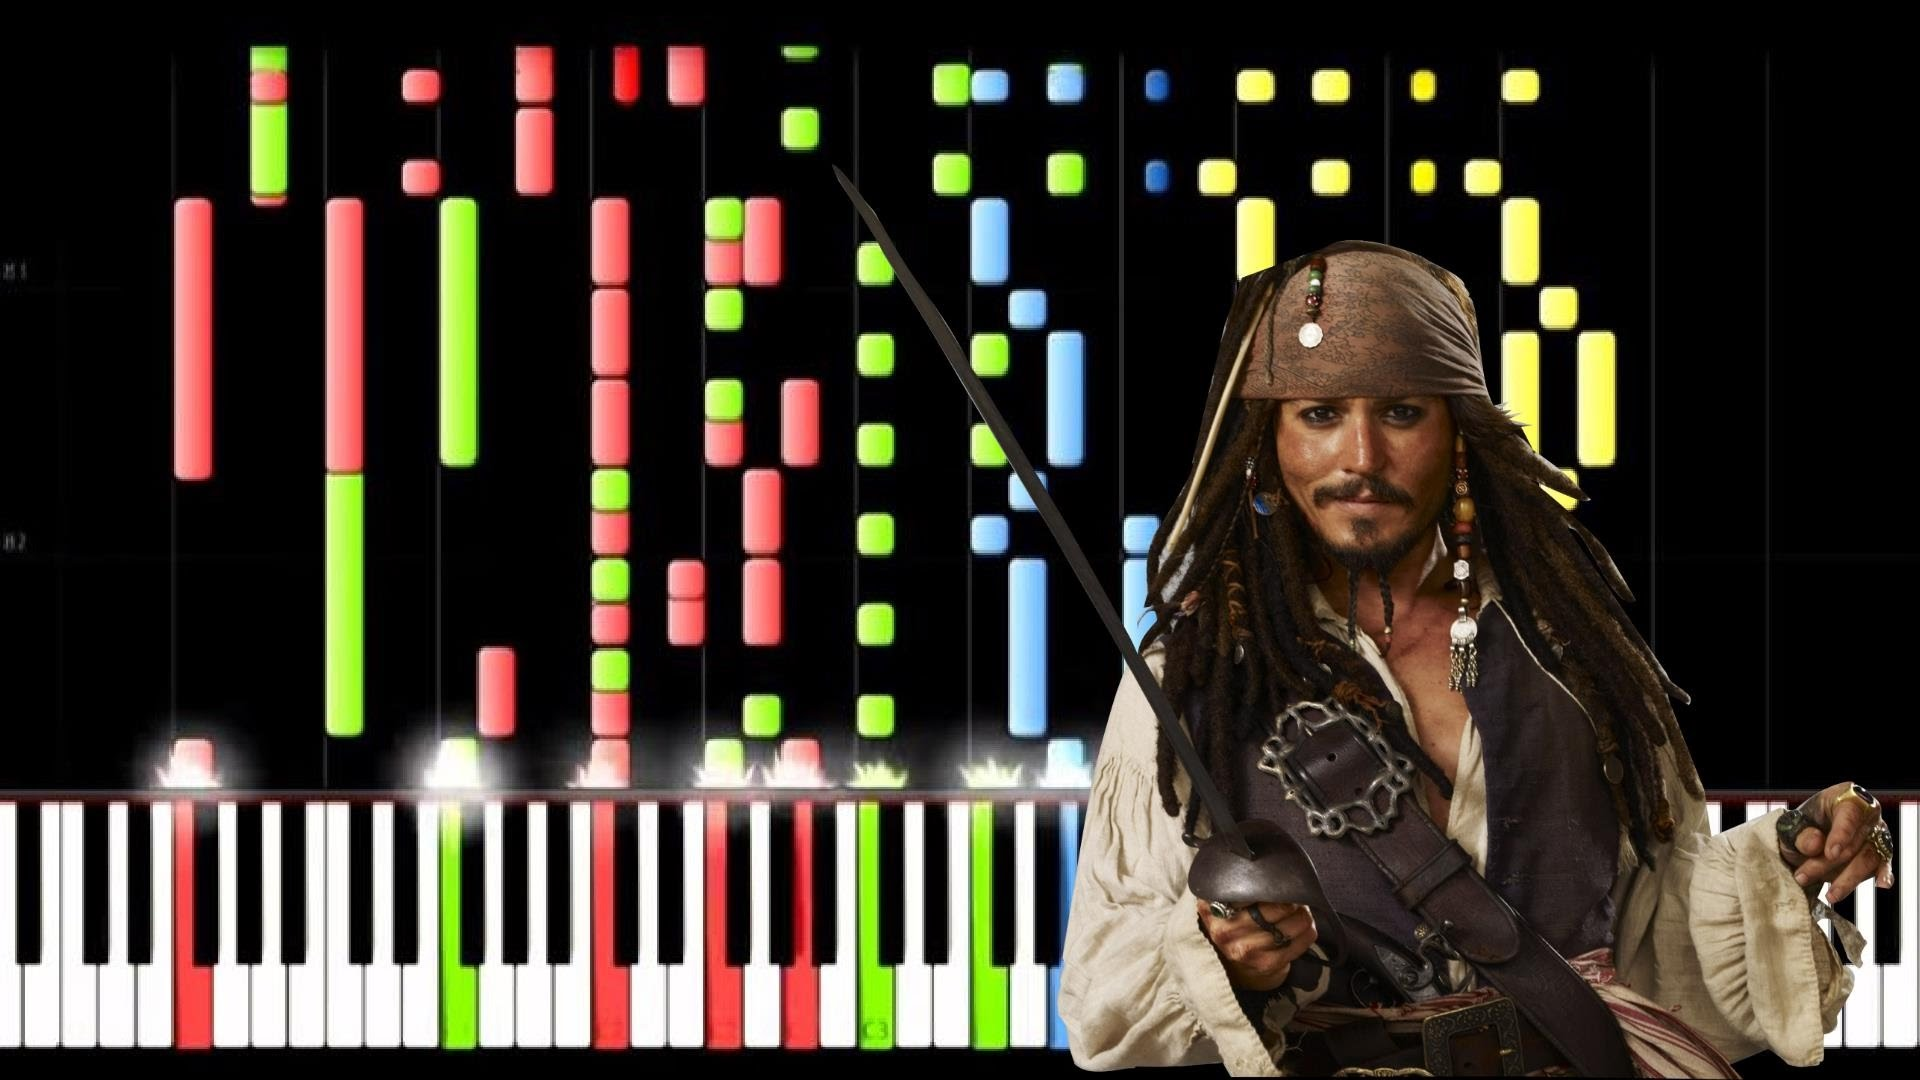 IMPOSSIBLE REMIX - Pirates of the Caribbean Medley 2